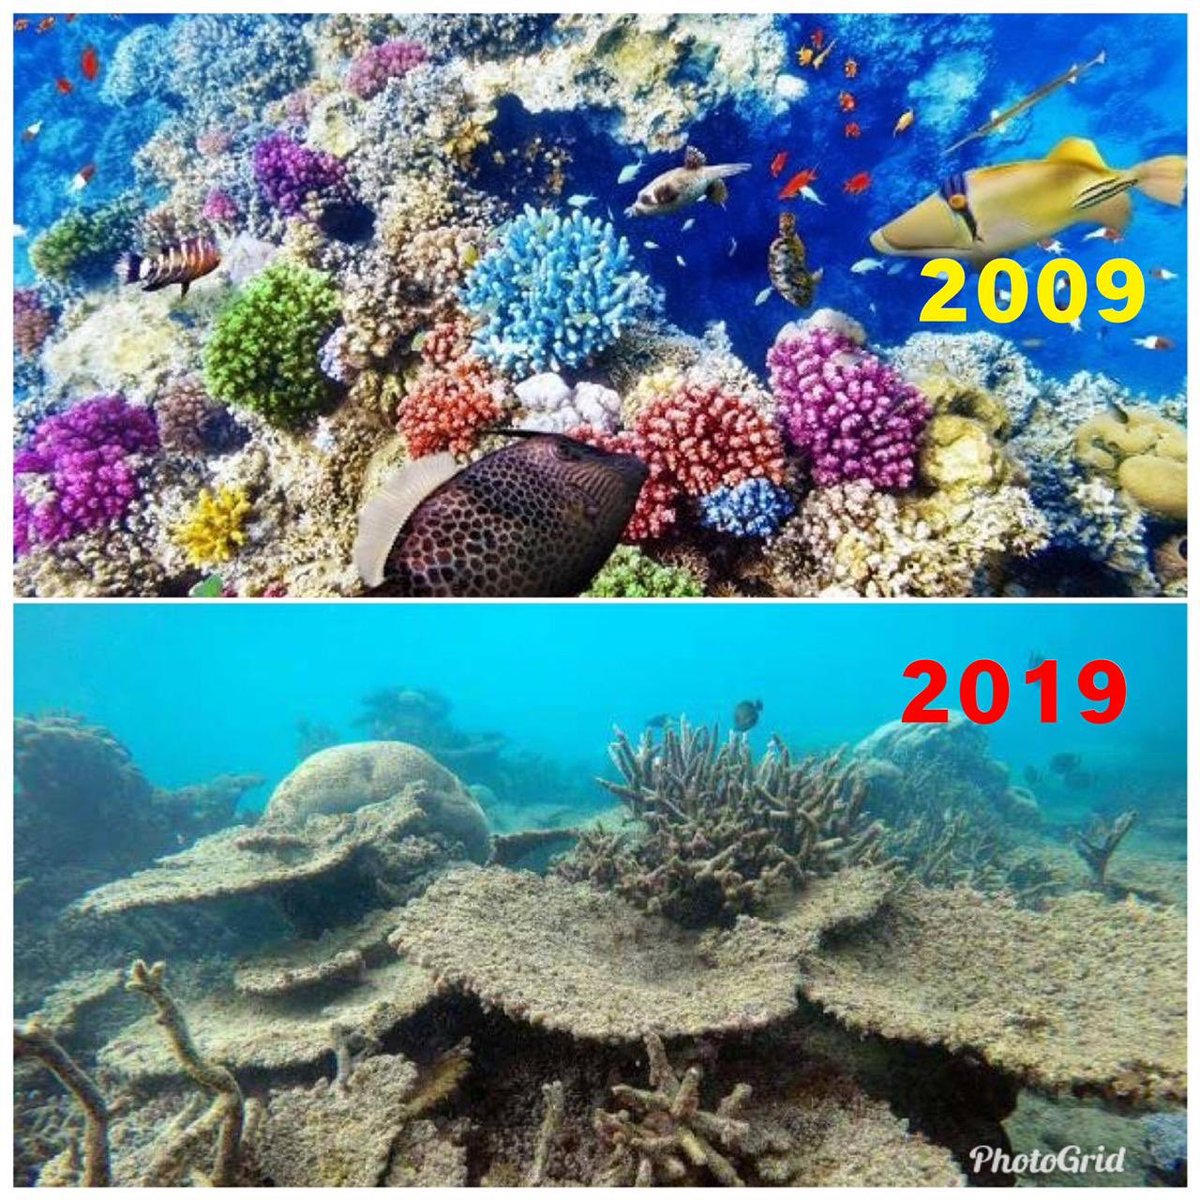 Replying to @ImRo45: The only #10YearChallenge we should be worried about